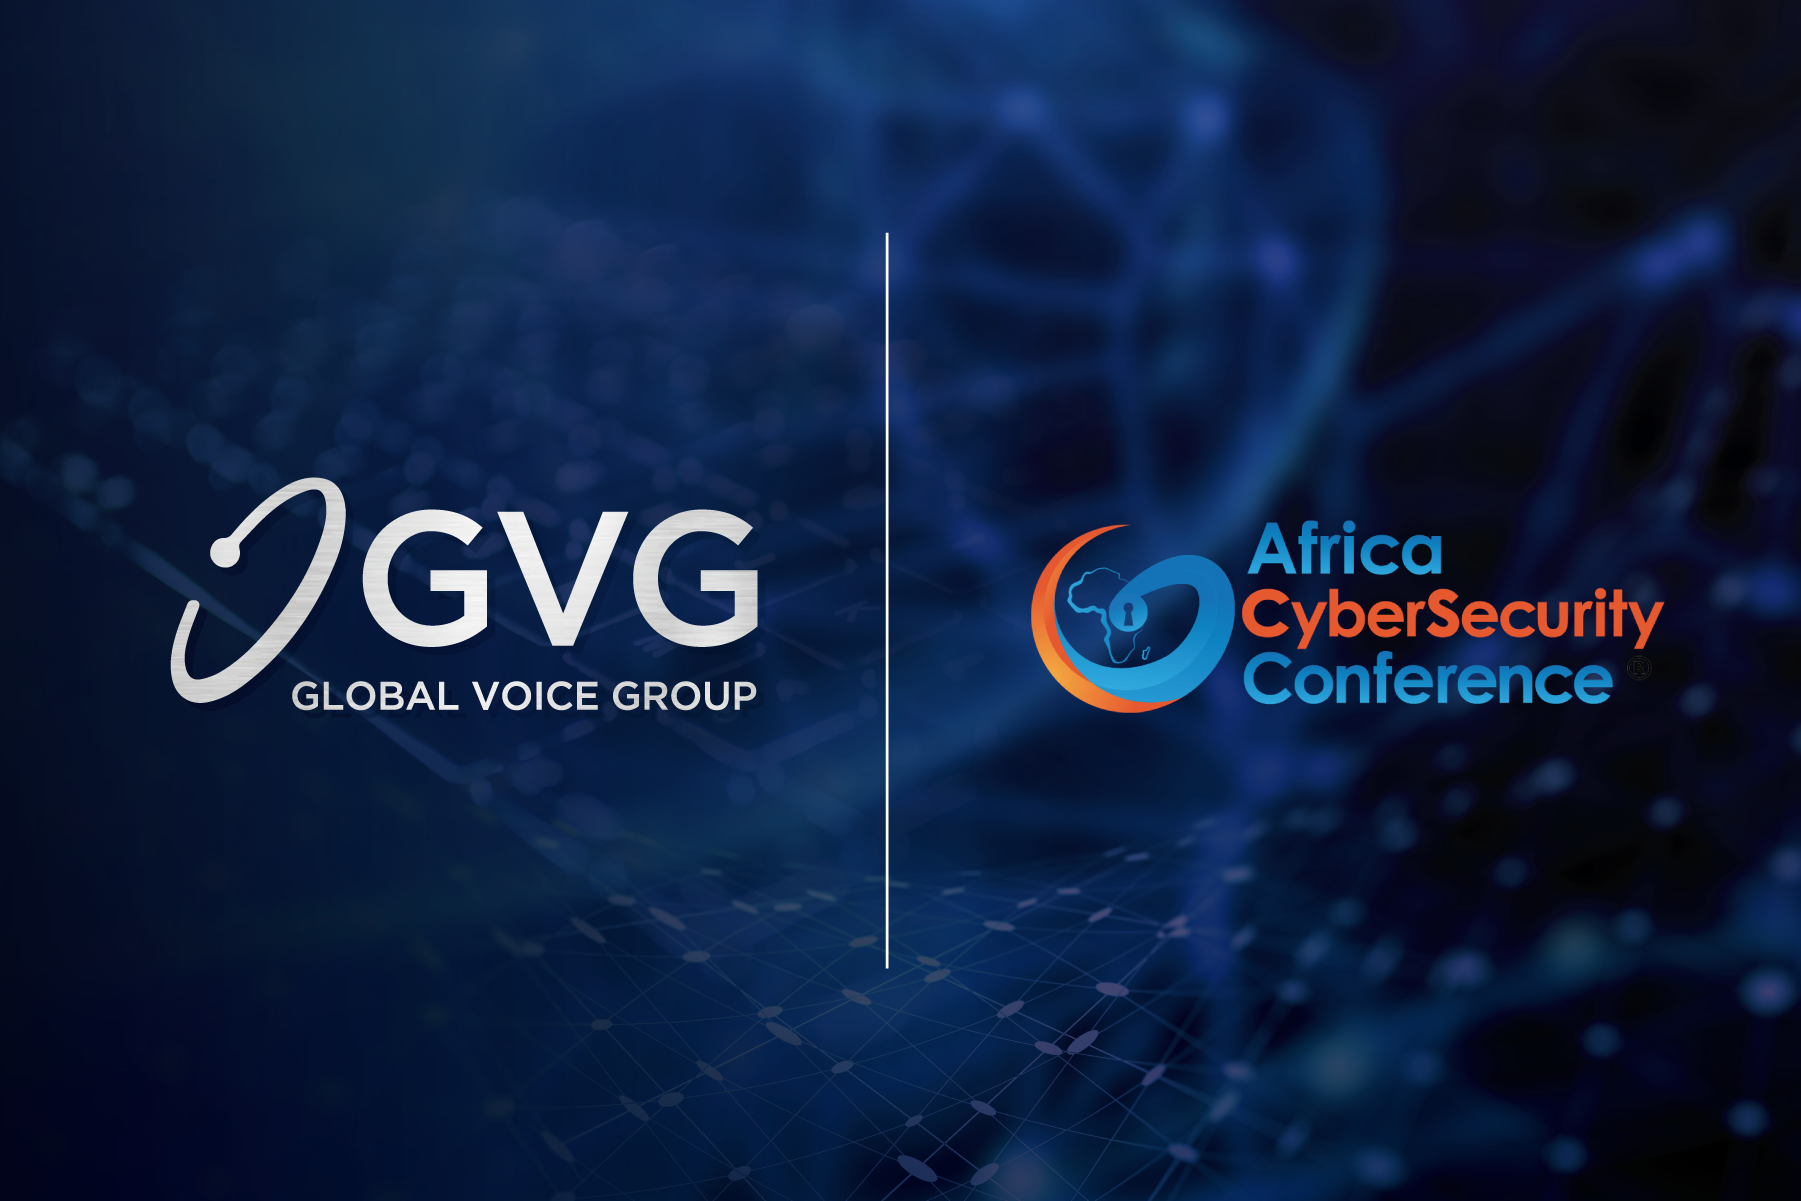 GVG At The Africa CyberSecurity Conference 2019